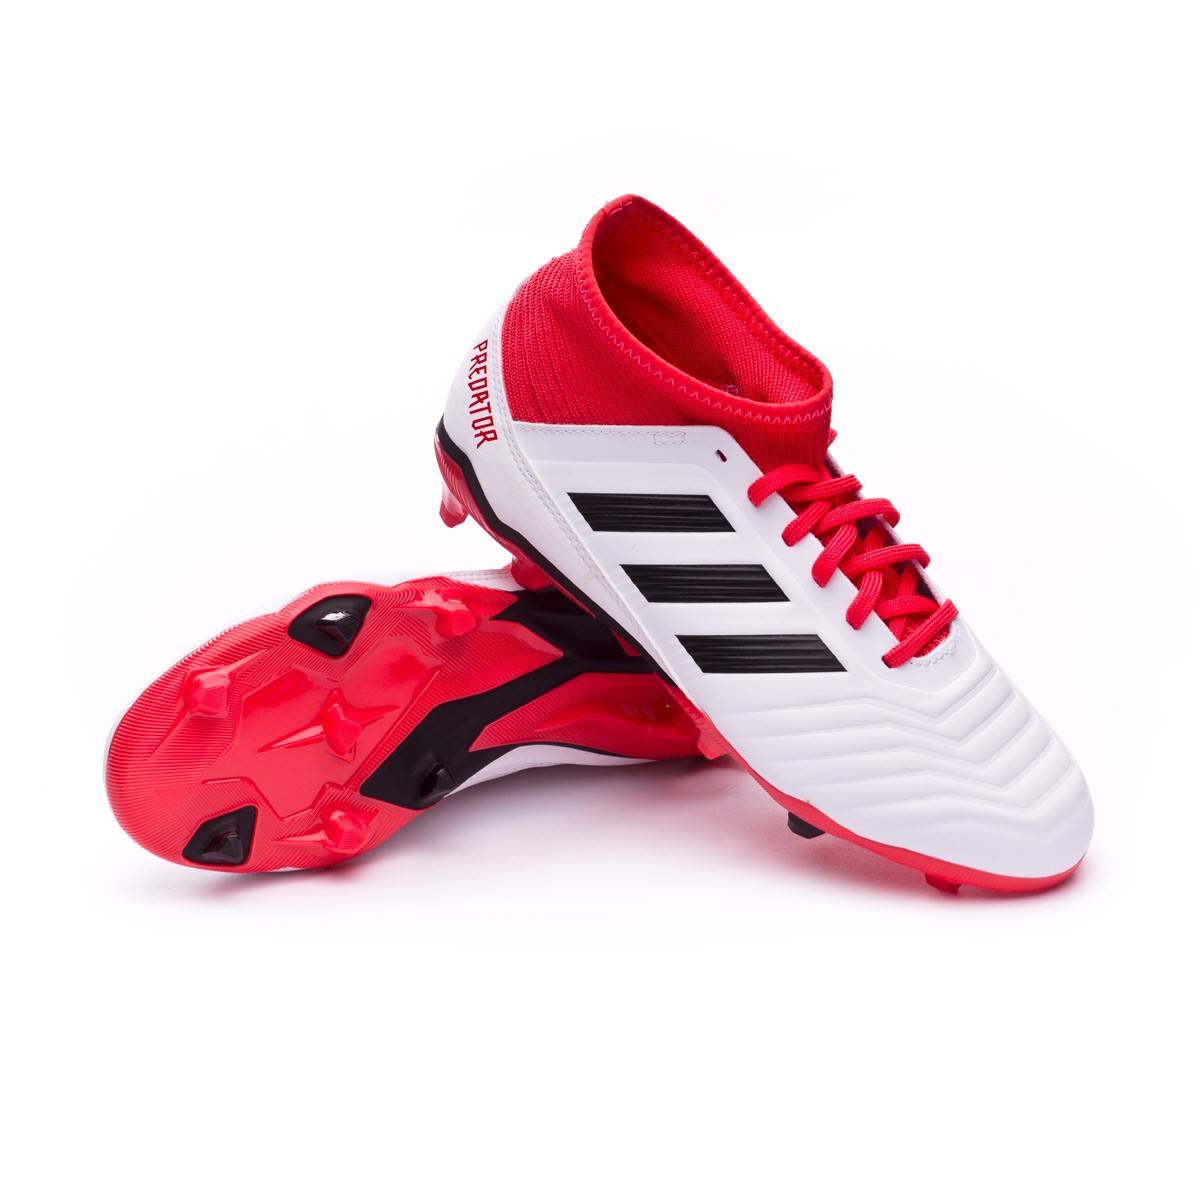 sale retailer cb1d3 d145c ... Bota Predator 18.3 FG Niño White-Core black-Real coral. CATEGORY. Football  boots · adidas football boots